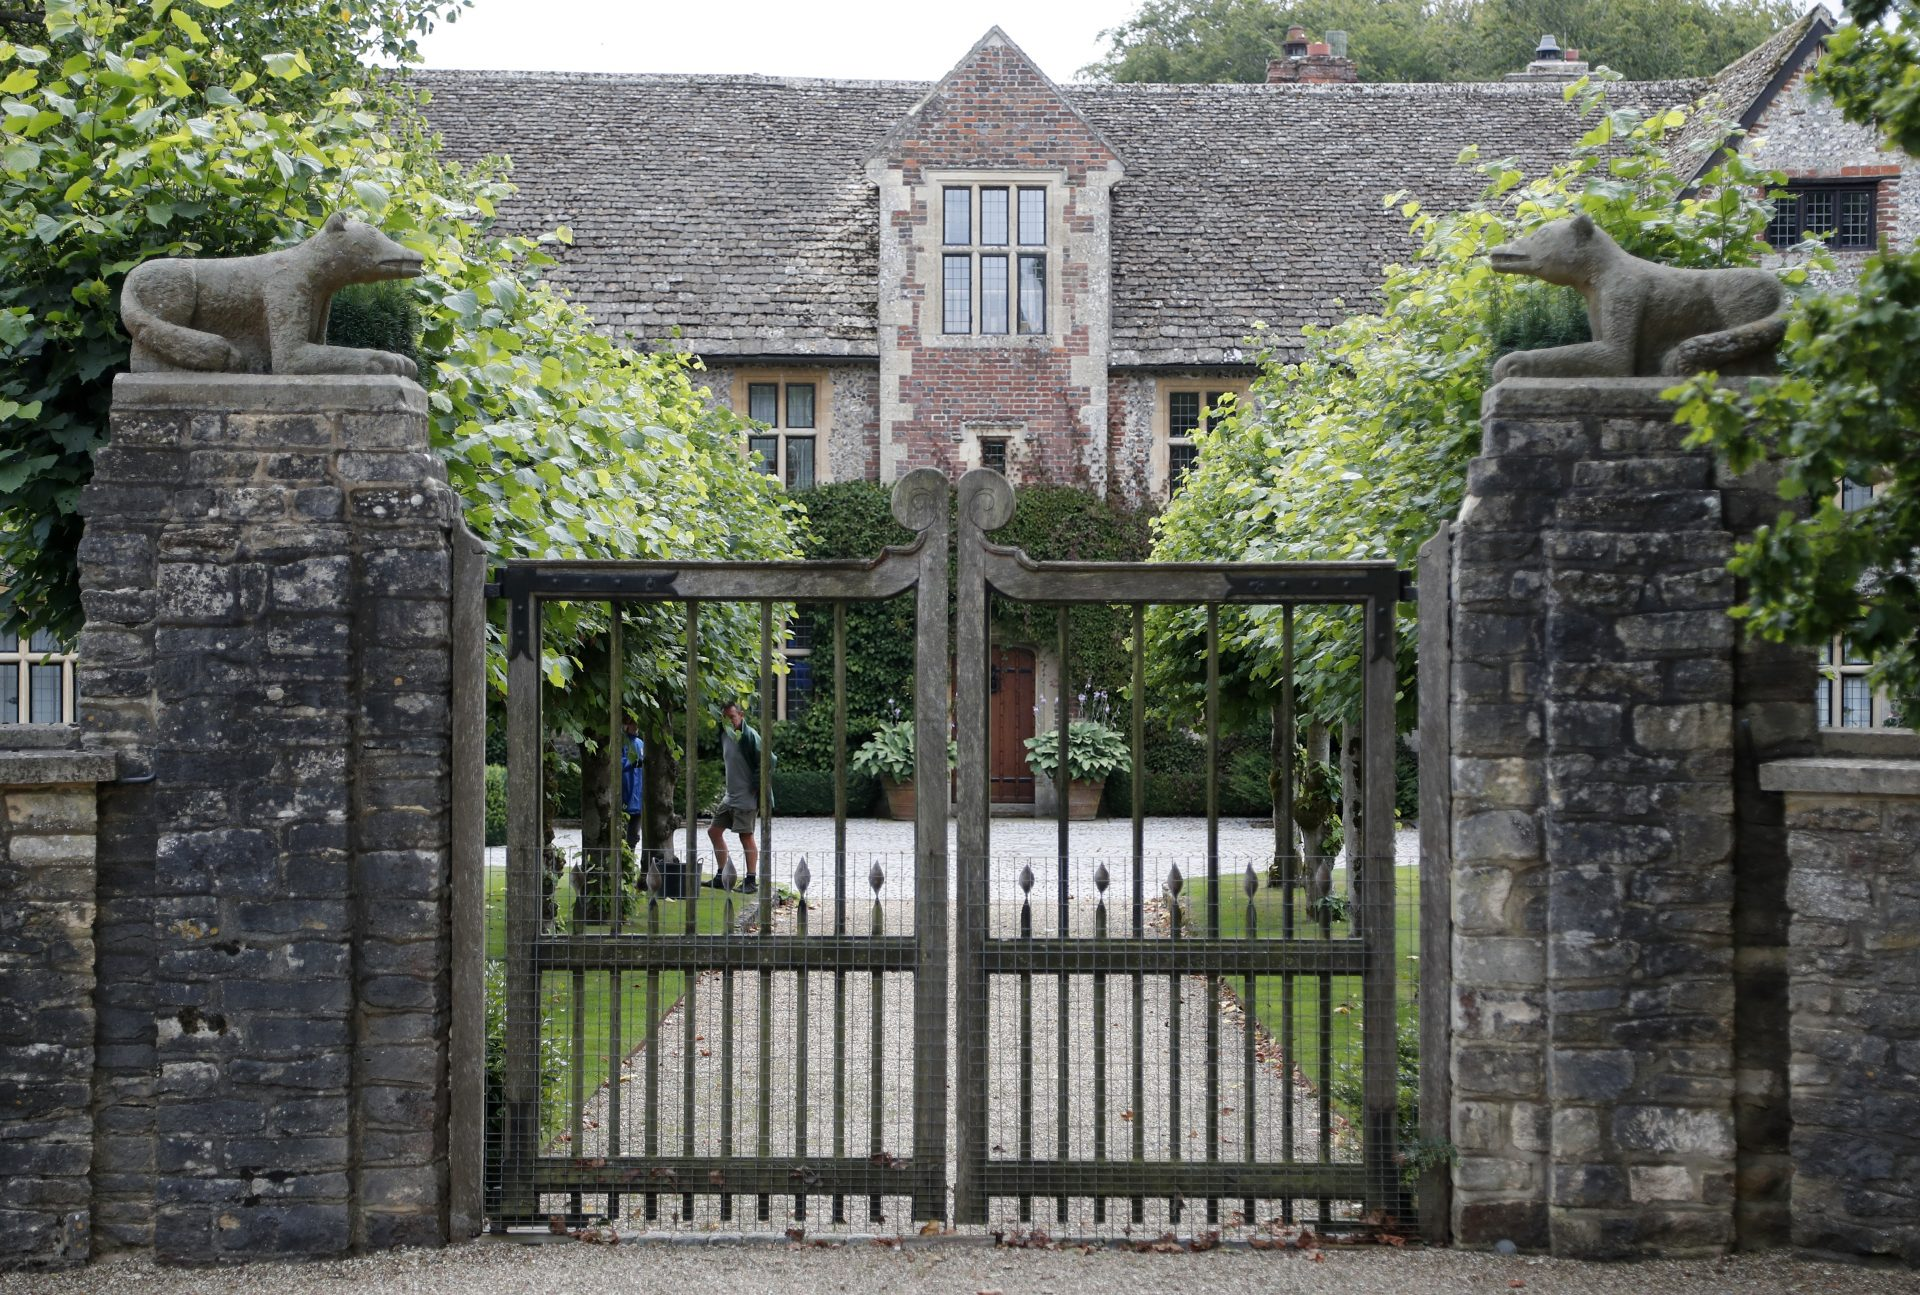 A gate protects the entrance of the Rooksnest estate near Lambourn, England, Tuesday, Aug. 6, 2019. The manor is the domain of Theresa Sackler, widow of one of Purdue Pharma's founders and, until 2018, a member of the company's board of directors. A complex web of companies and trusts are controlled by the family, and an examination reveals links between far-flung holdings, far removed from the opioid manufacturer's headquarters in Stamford, Conn.